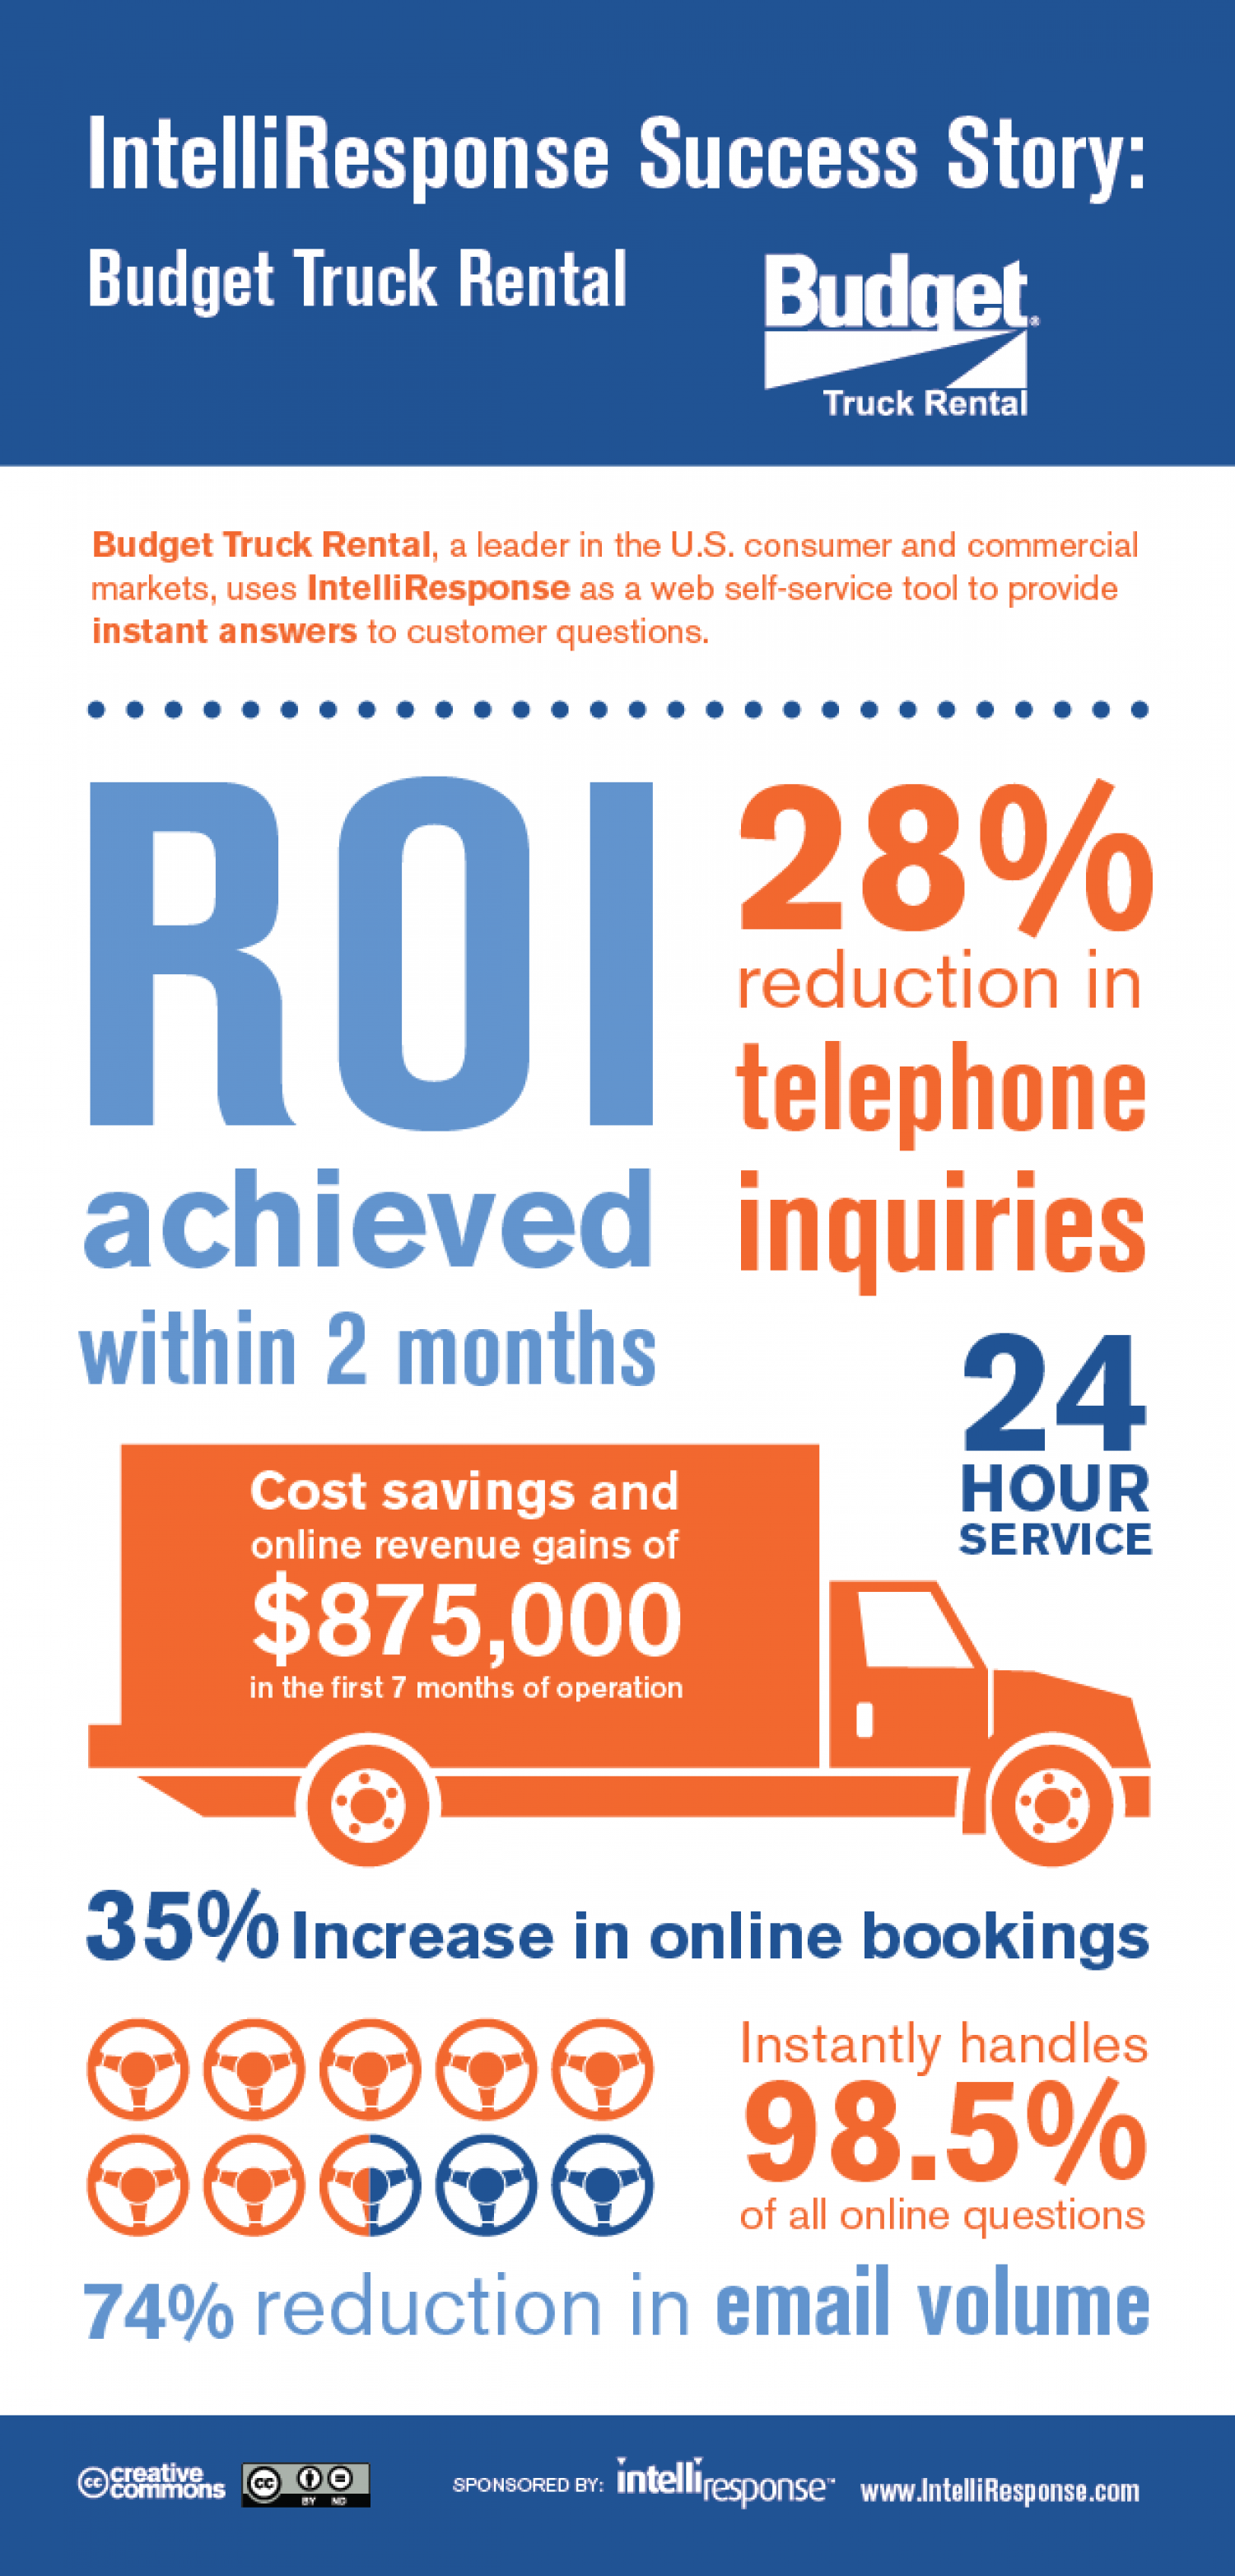 Budget Truck Rental Uses Virtual Agent Self Service Technology To Achieve a 28% Reduction in Telephone Inquiries. Infographic